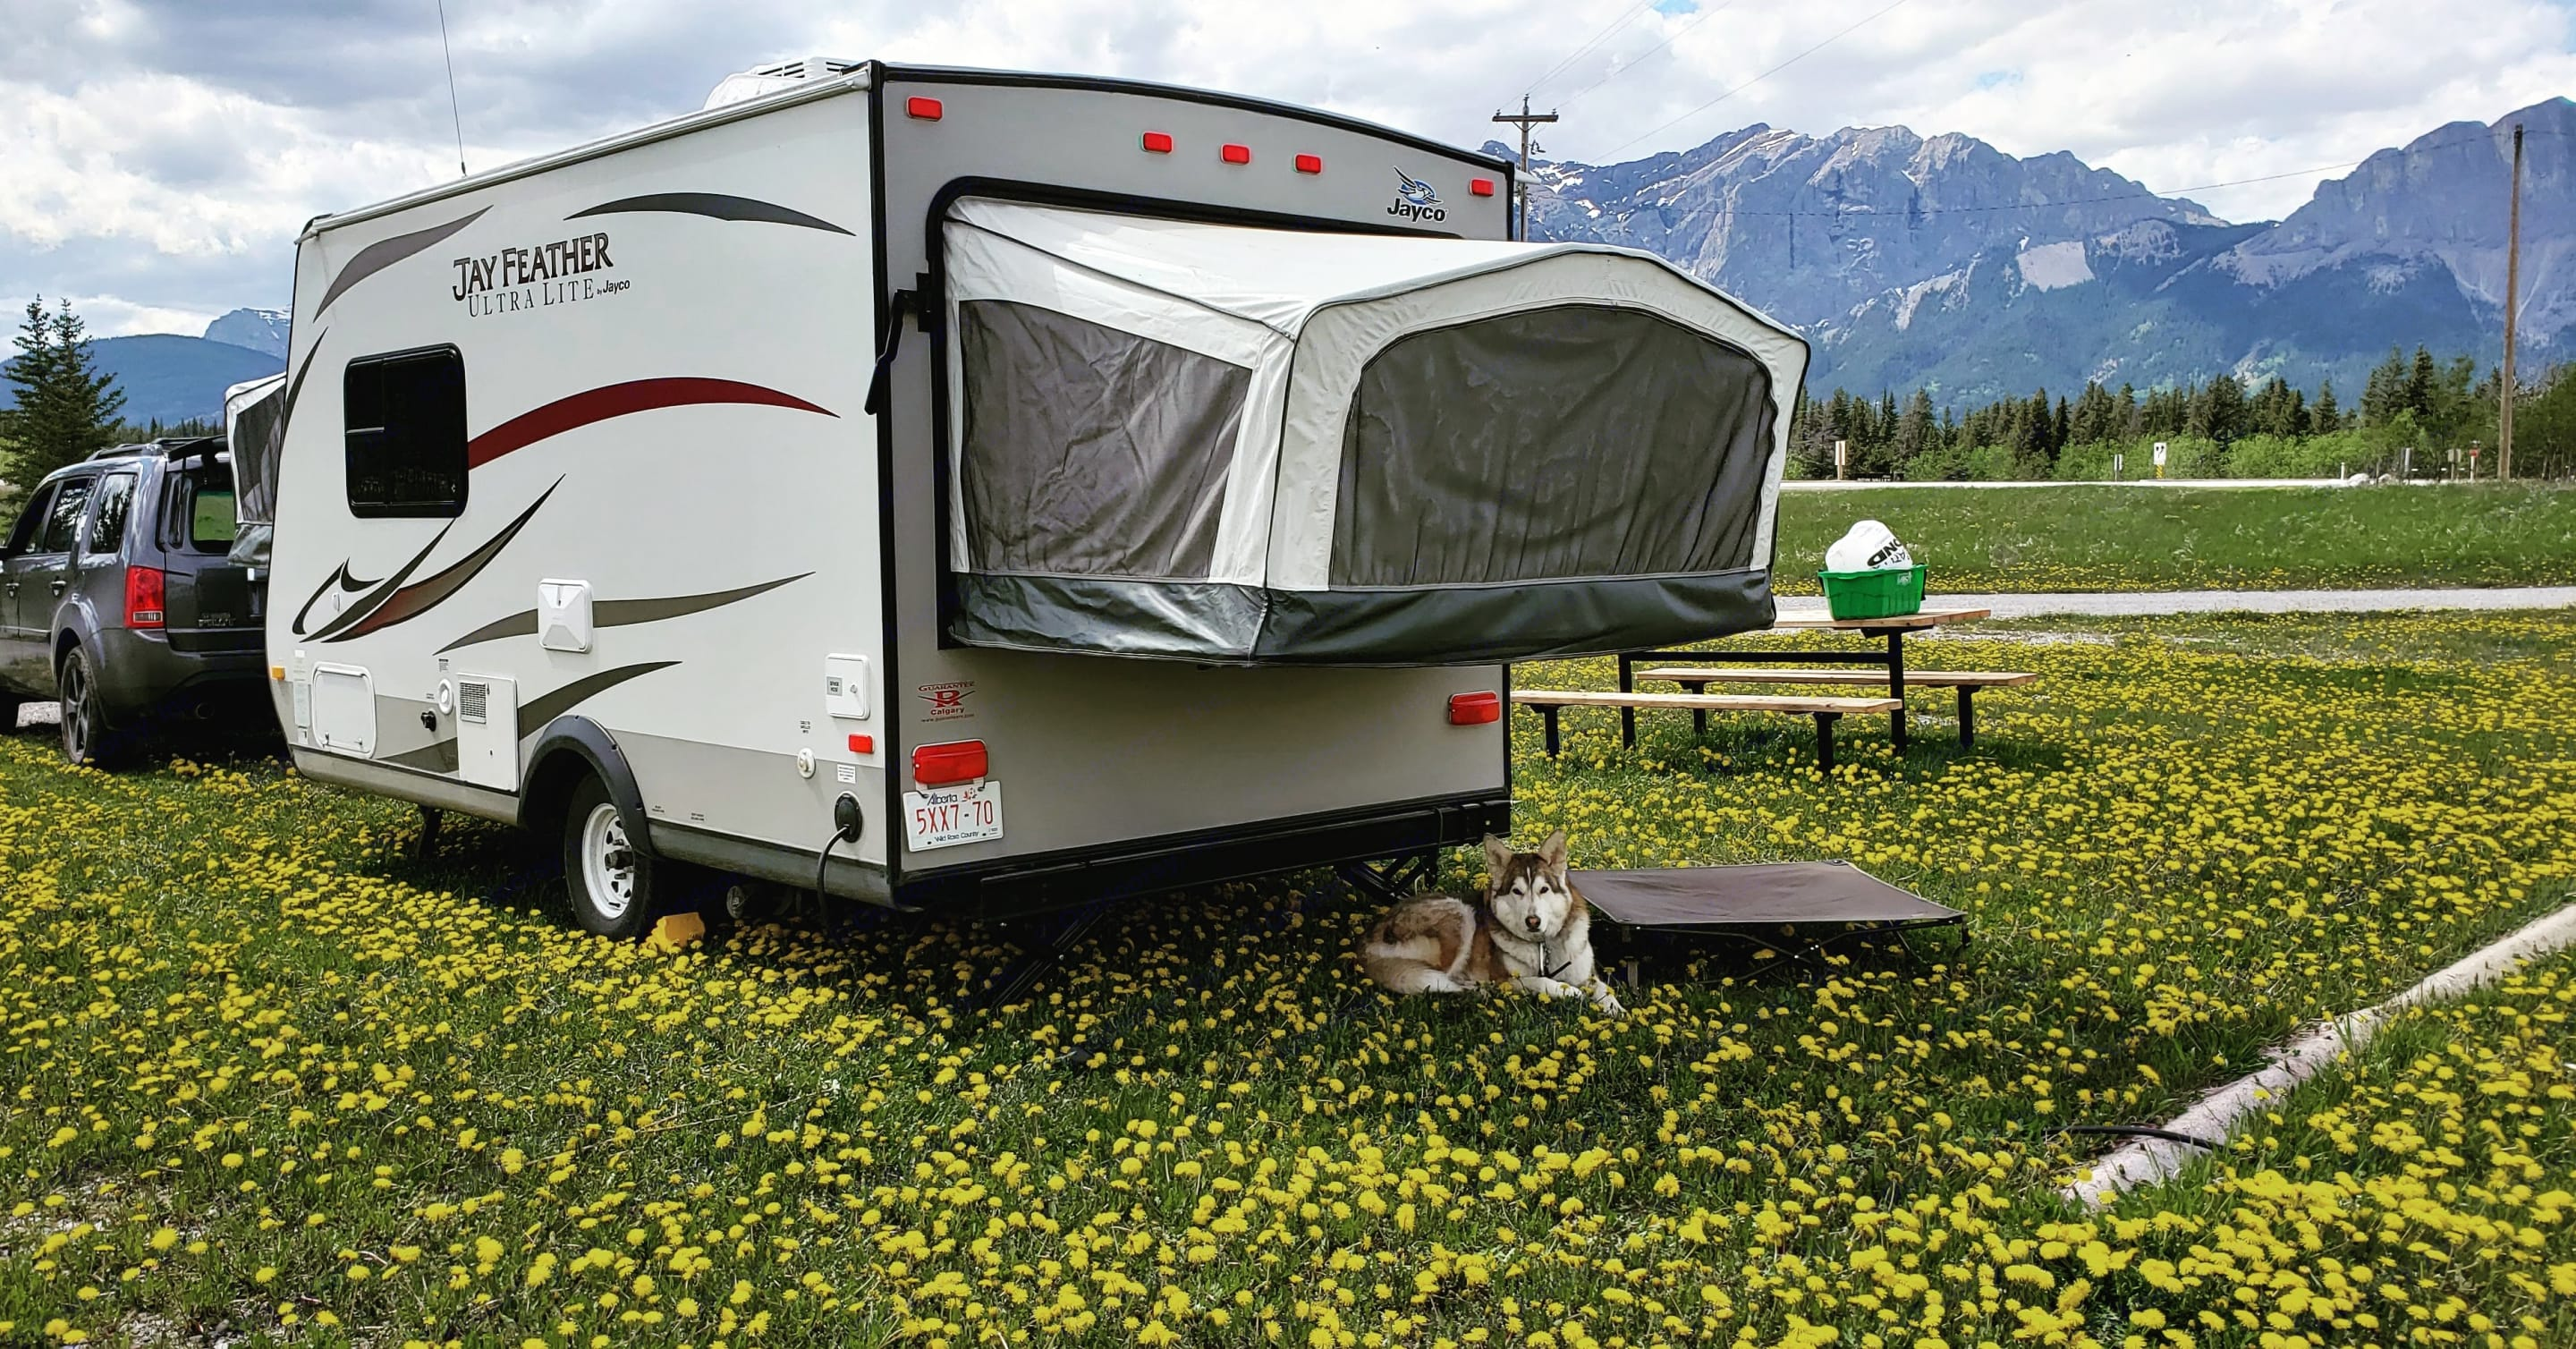 Back of the Trailer. Jayco Jay Feather ultra lite X17a 2013